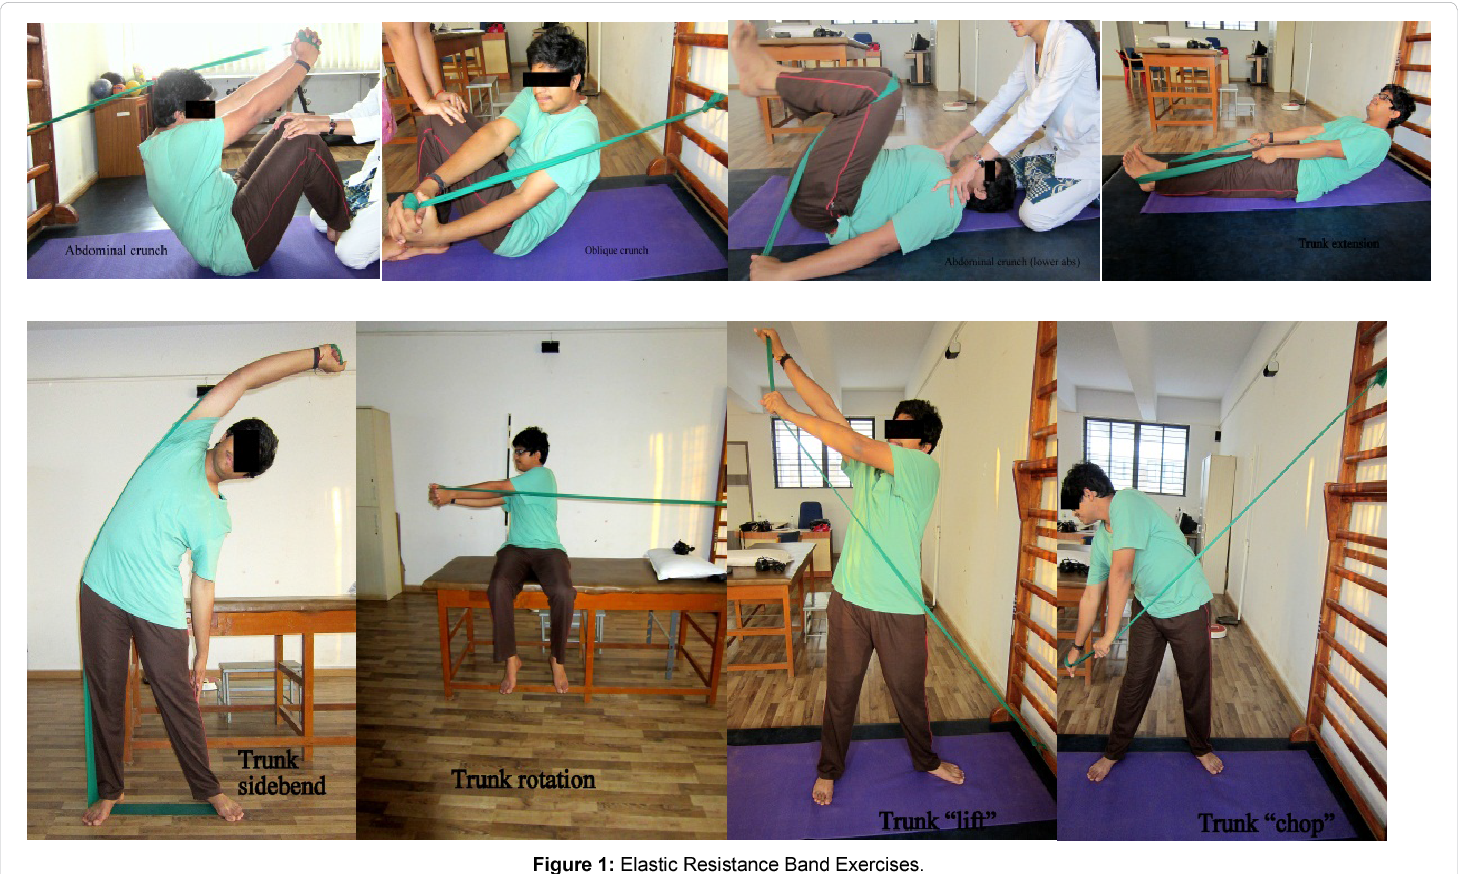 Figure 1 From Comparison Of Elastic Resistance Band Exercises And